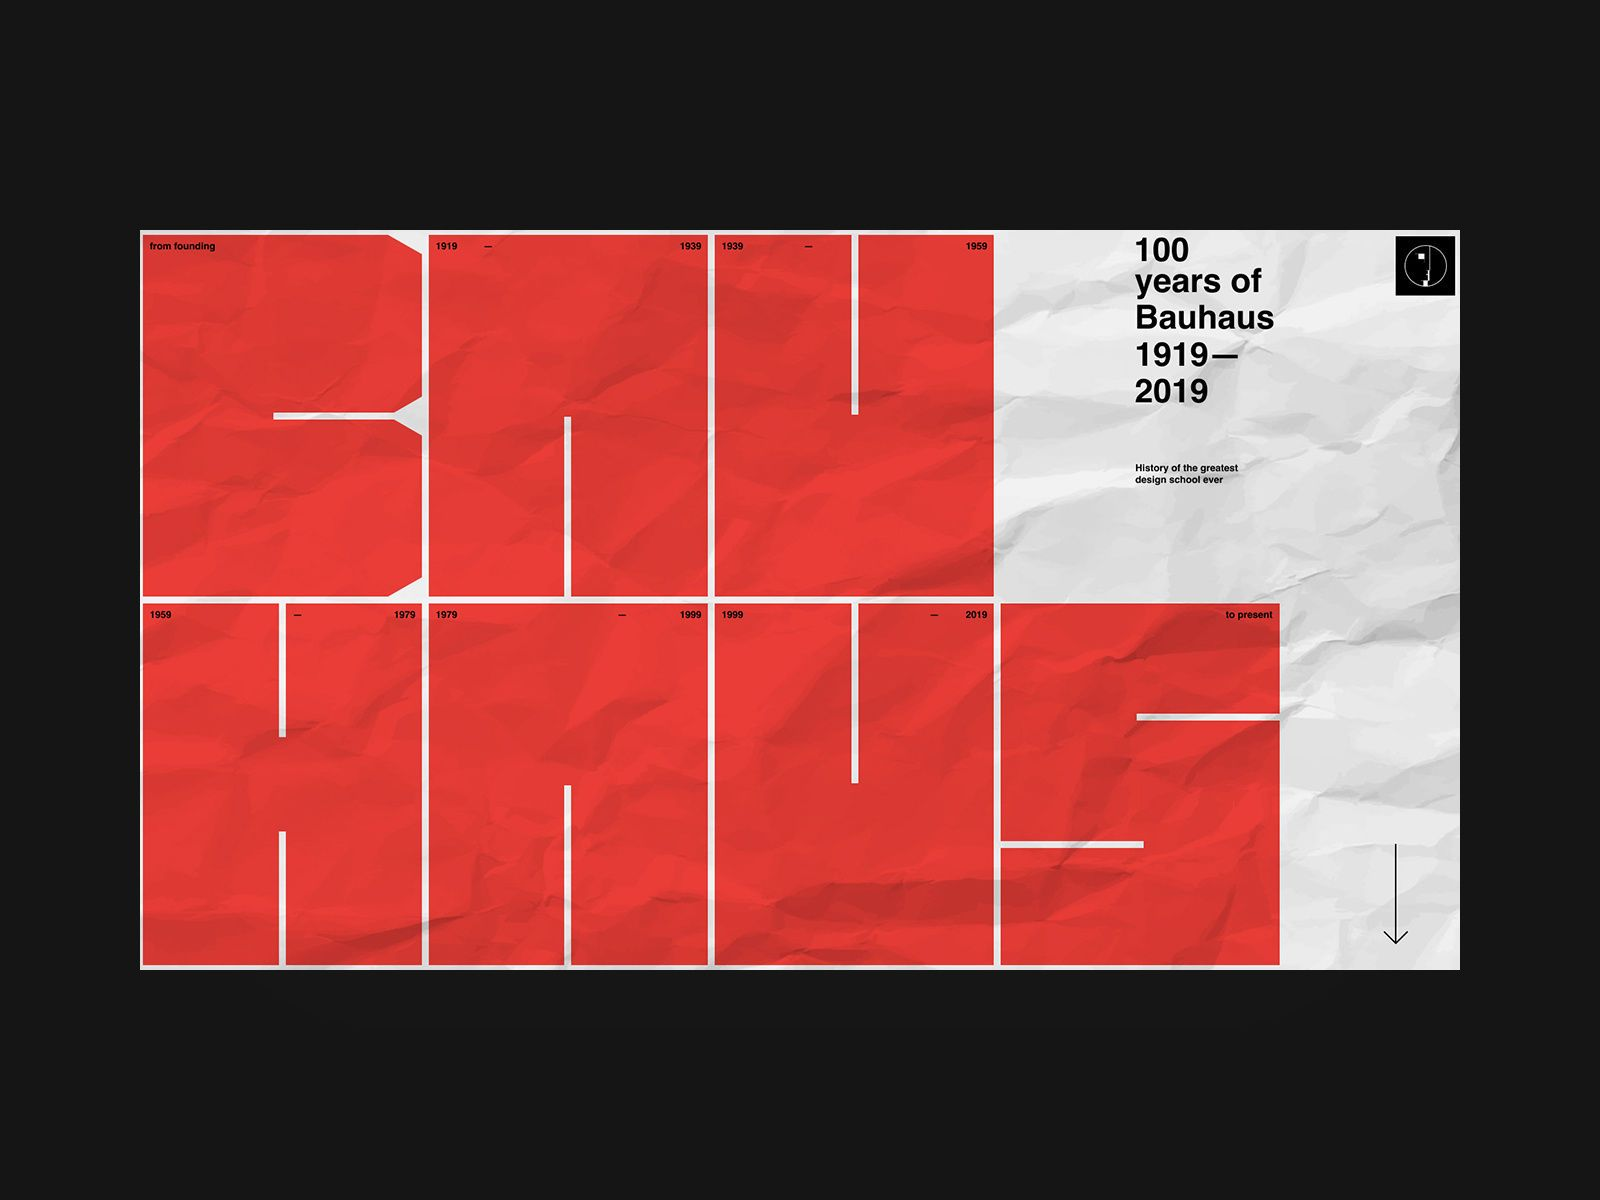 Bauhaus 100 Years By Viacheslav Olianishyn For Obys Webdesign Typography Red Lettering Design Graphic Design Layouts Bauhaus